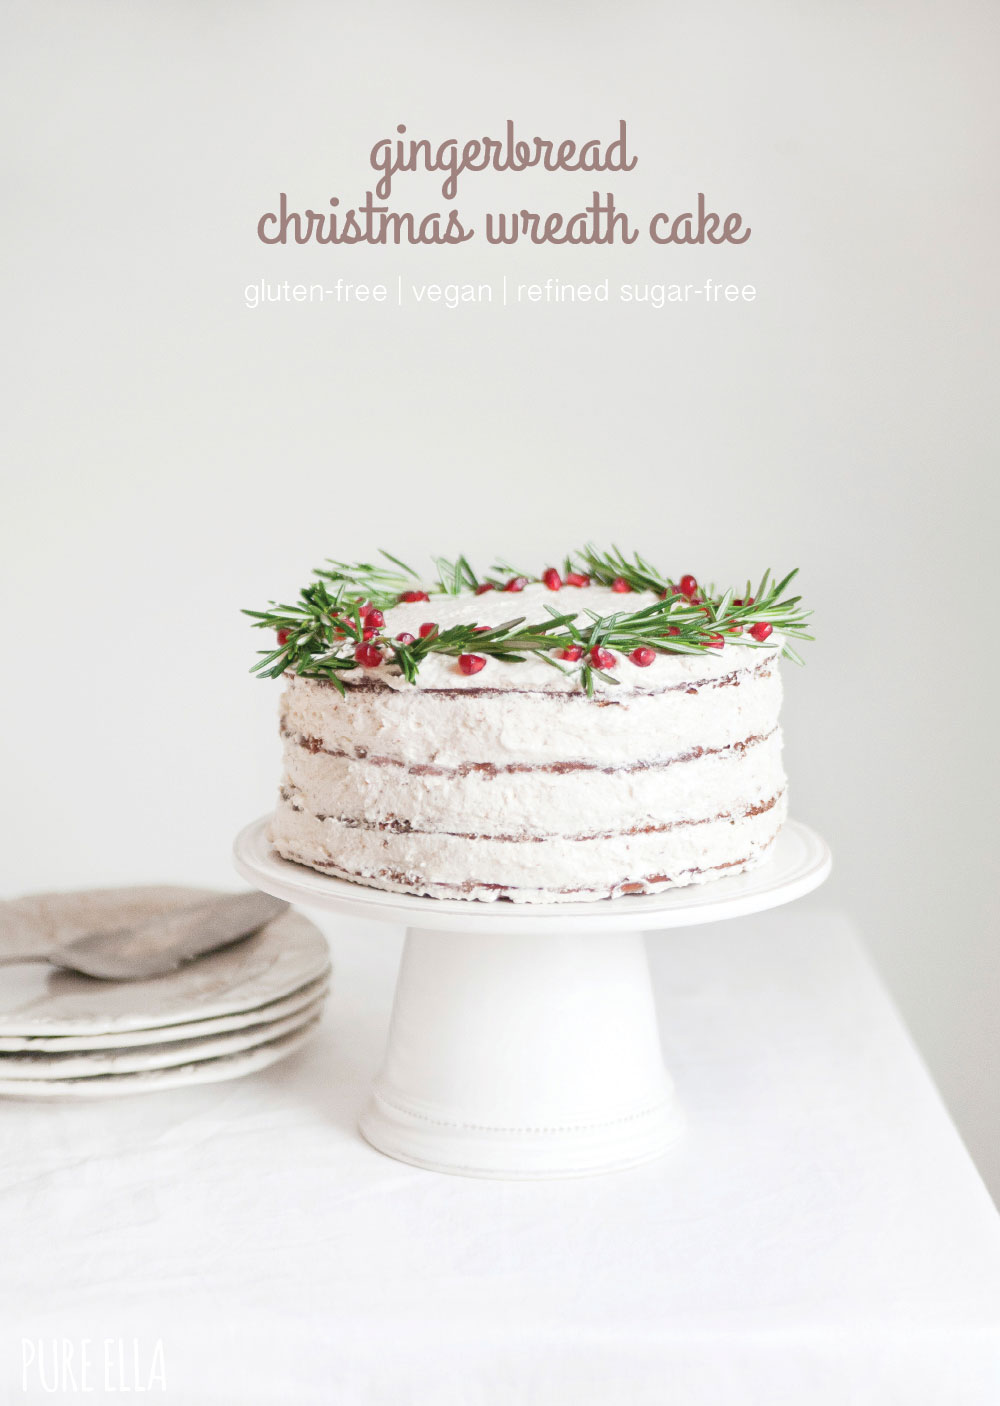 Gluten-free-Vegan-Gingerbread-Christmas-Wreath-Cake-Recipe-Main